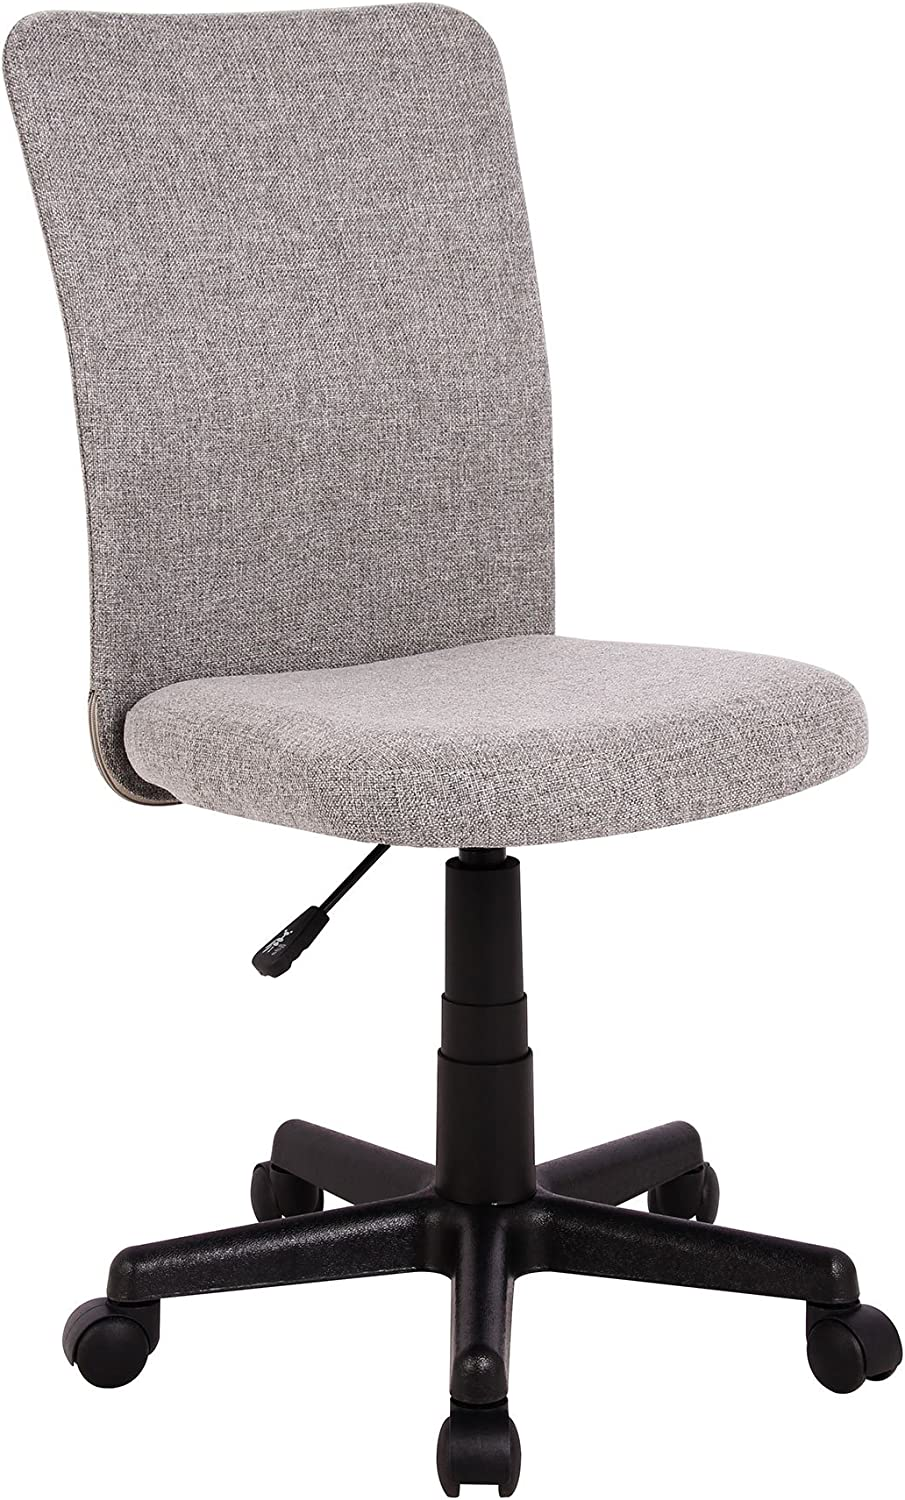 SixBros. Office Chair Grey H-2578 2493